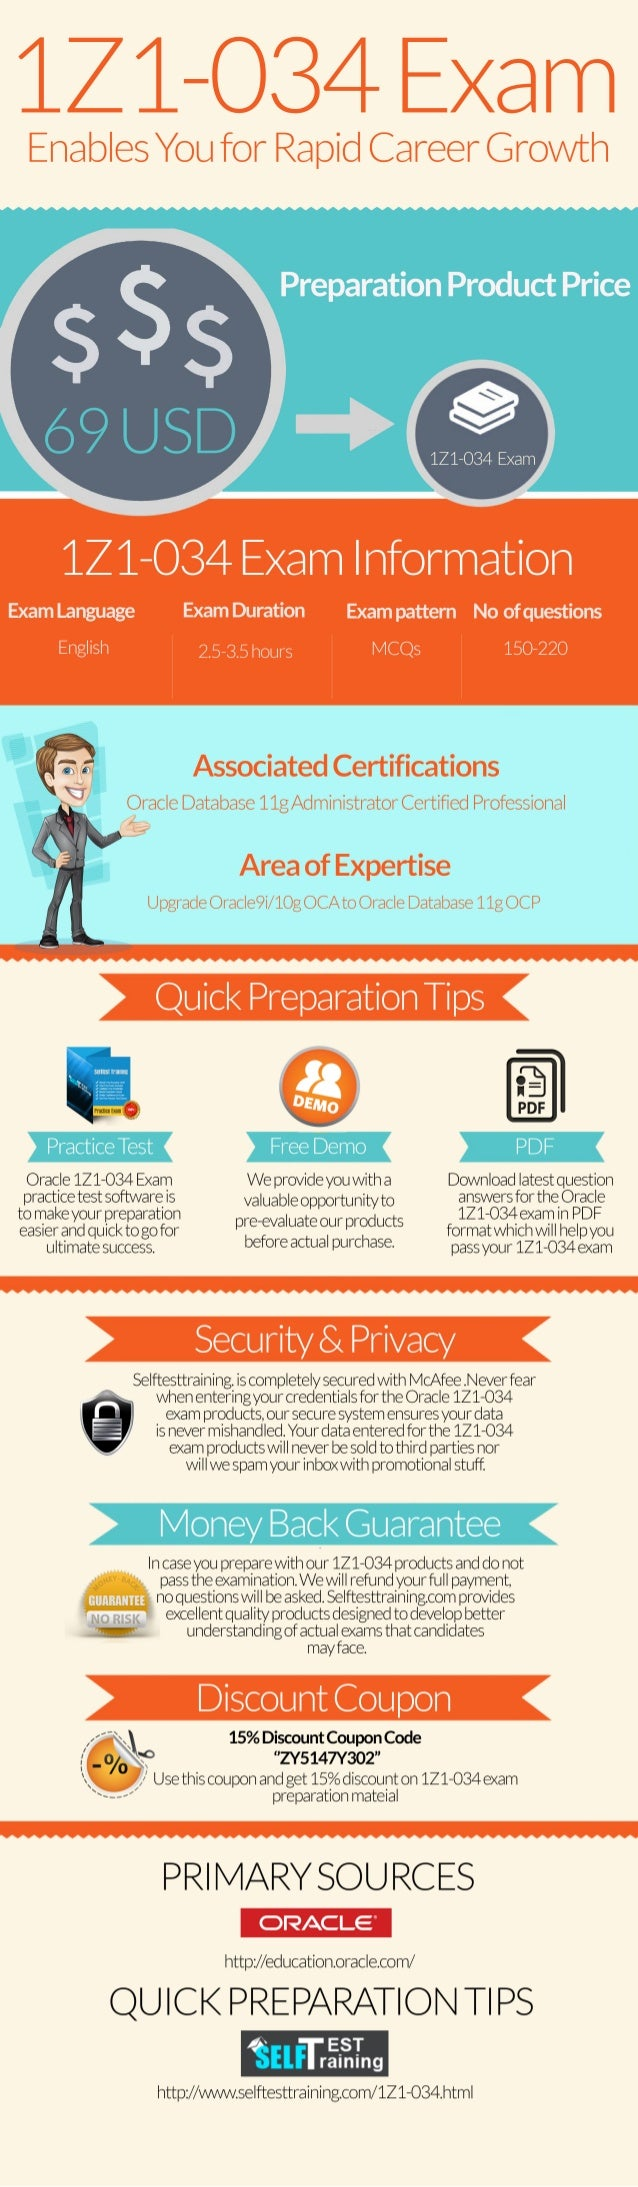 Latest 1z0-034 exam questions & practice test [infographic]